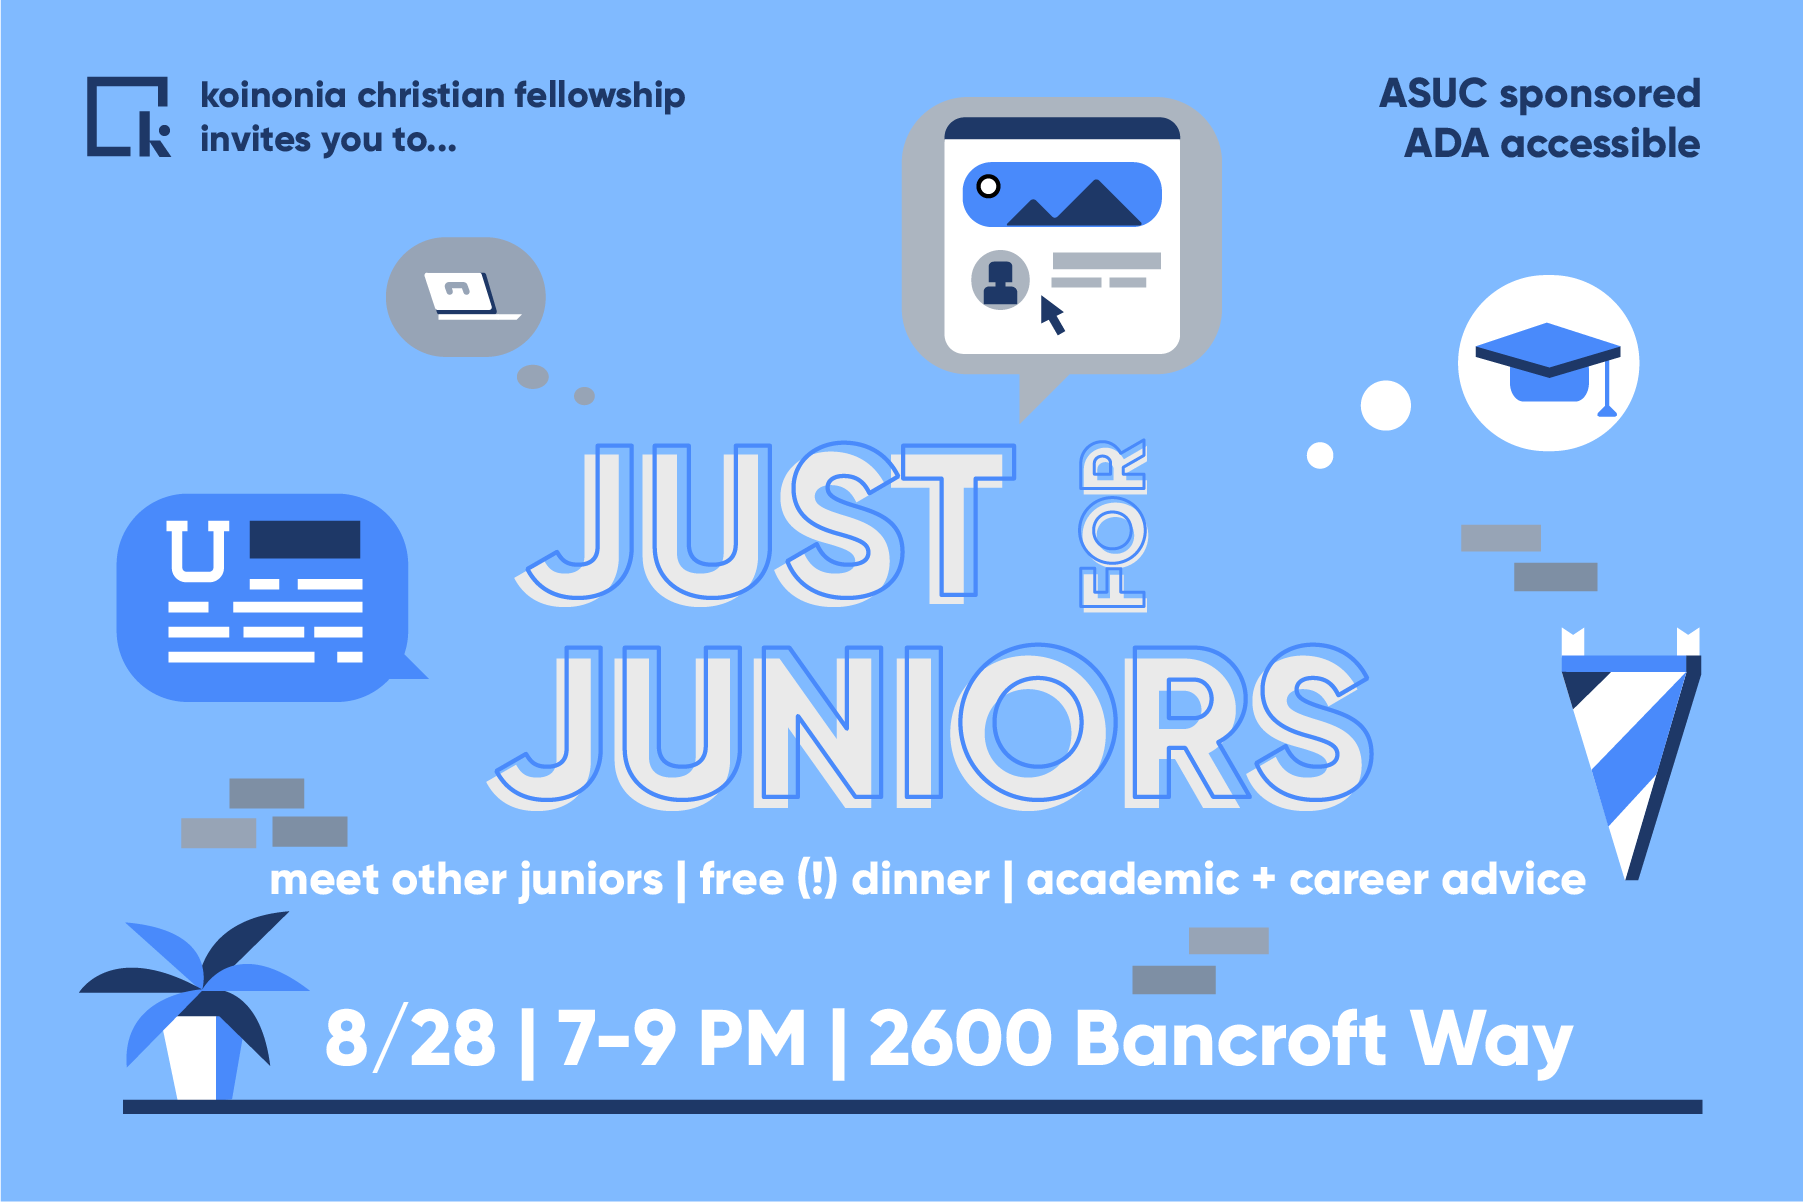 Are you a junior transfer? Come and listen to tips and advice from our upperclassmen who can answer your questions and tell you more about being a student and thriving at Cal!a